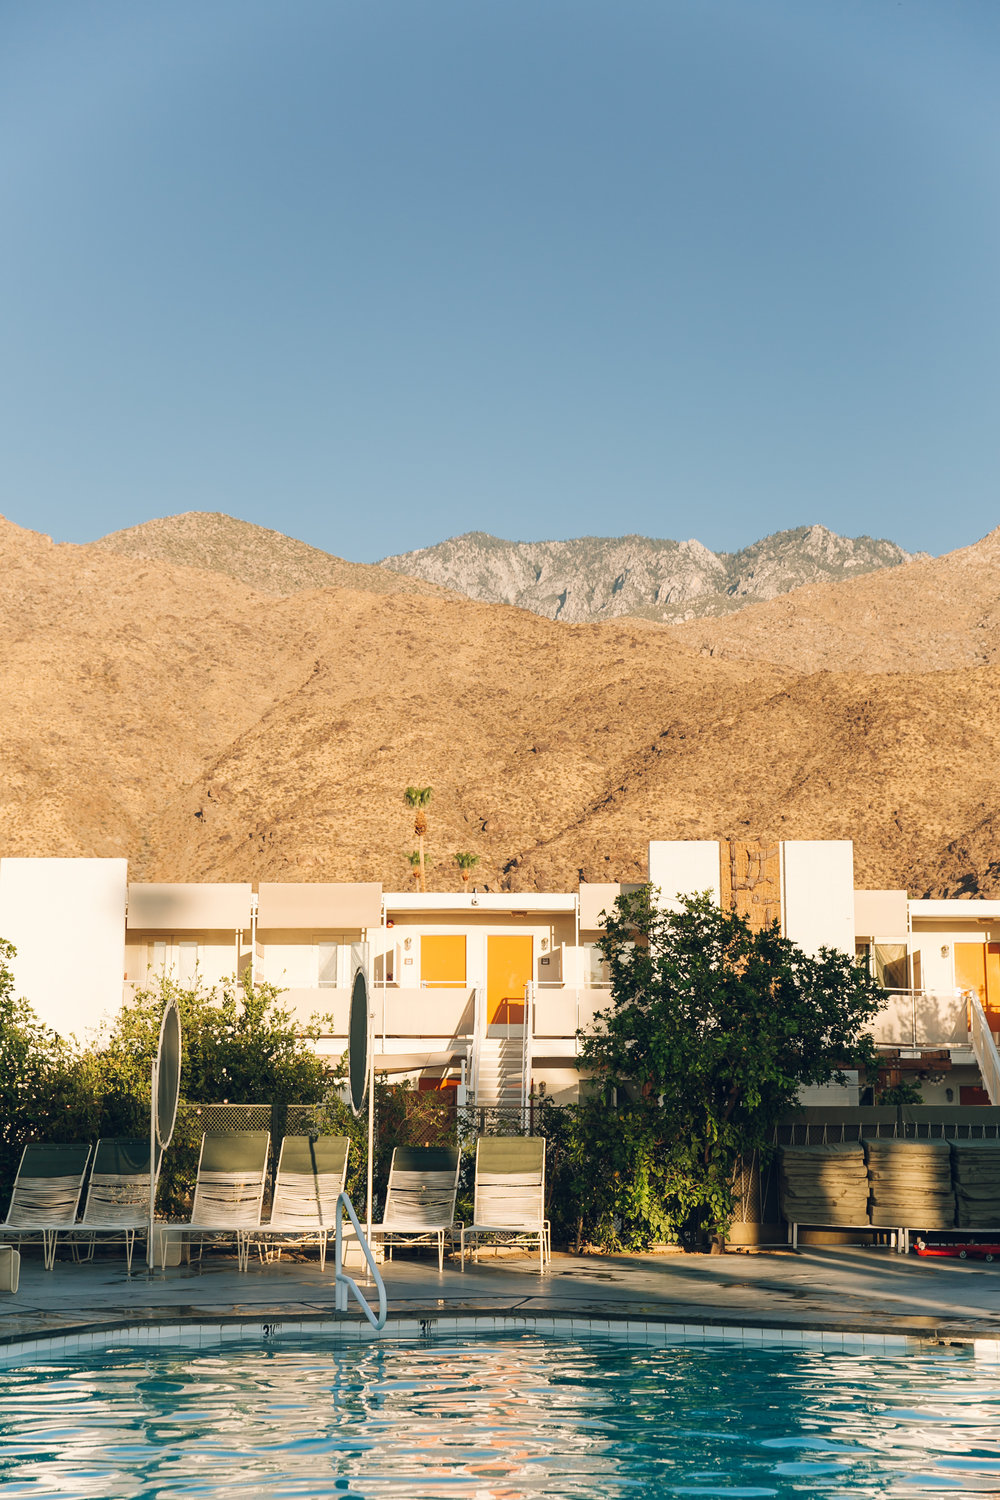 Ace Hotel Palm Springs - Haarkon in California.